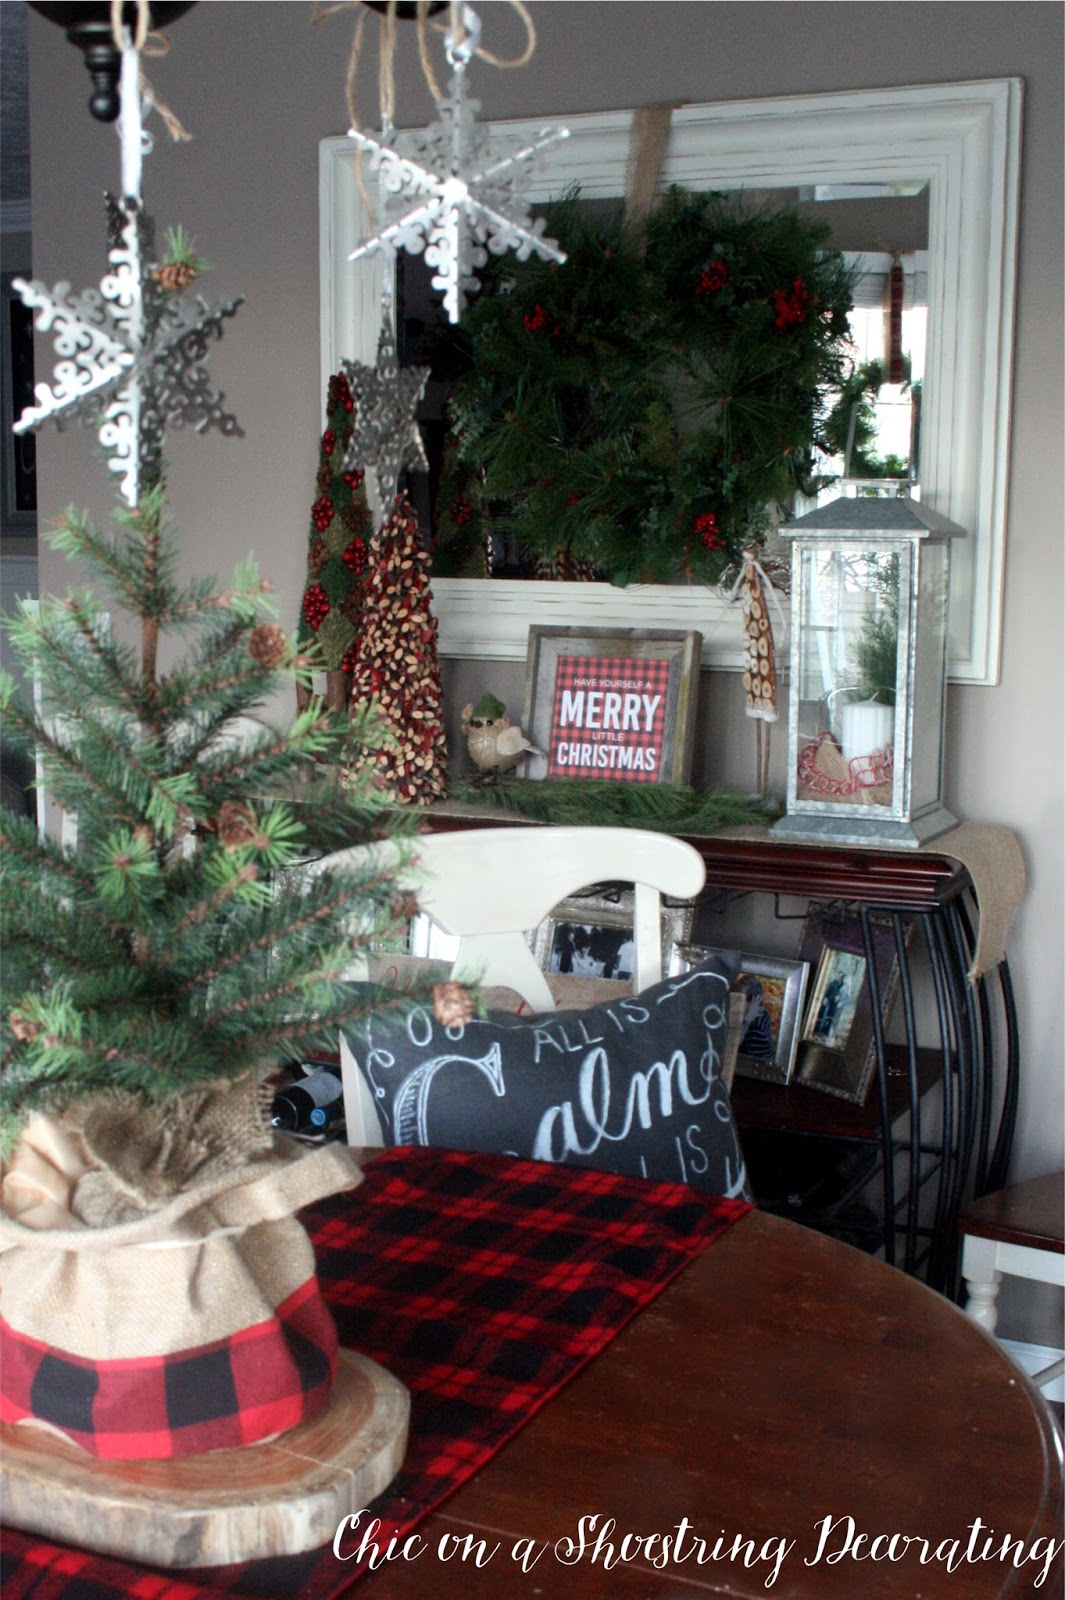 Chic on a Shoestring Decorating Farmhouse Christmas Decor Merry & Brigh